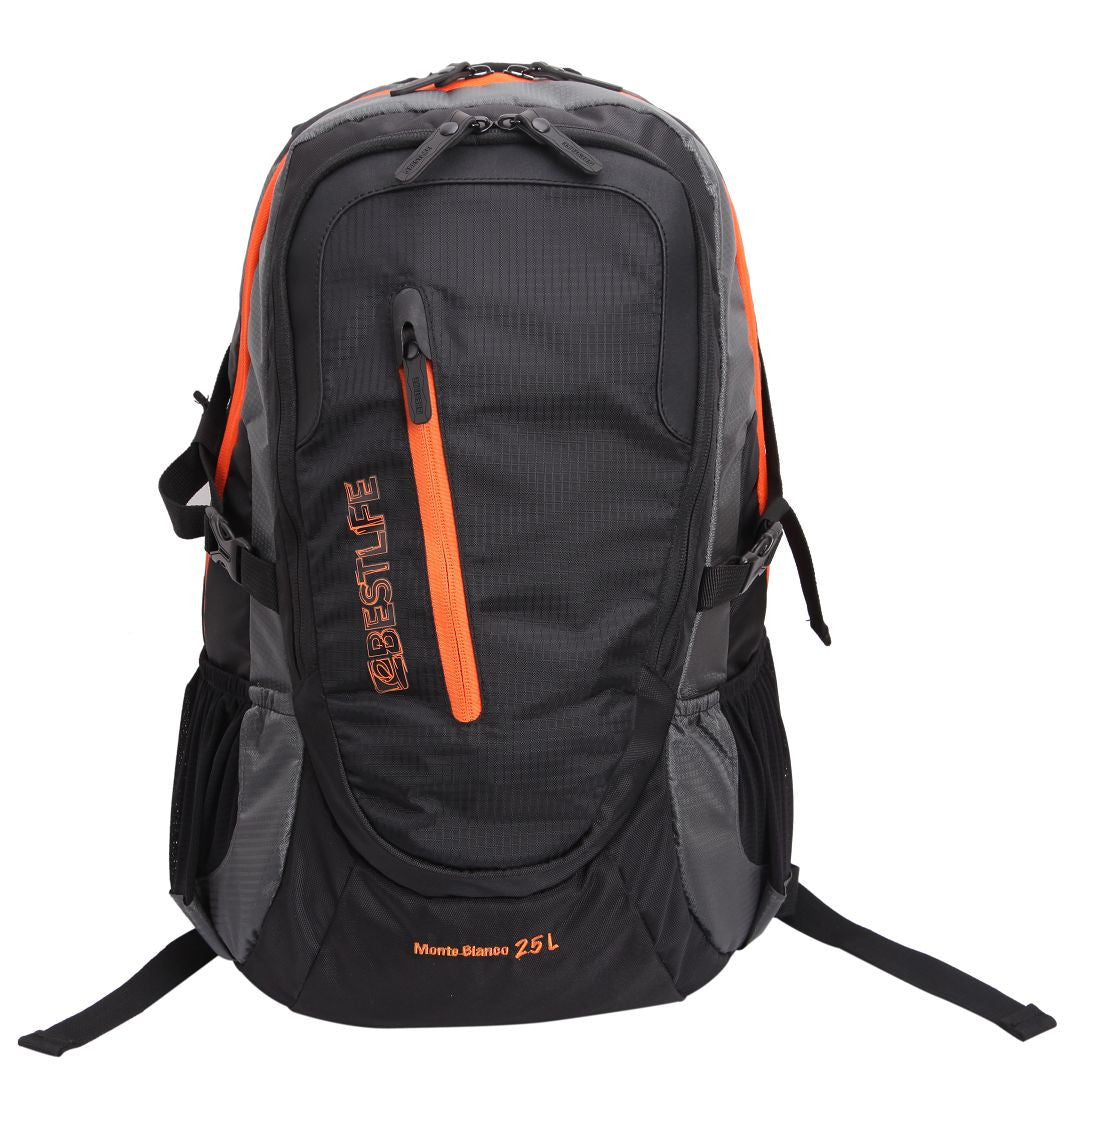 Bestlife Backpack BLB-3076-15.6'' (Black and Orange) - OBM Distribution, Inc.